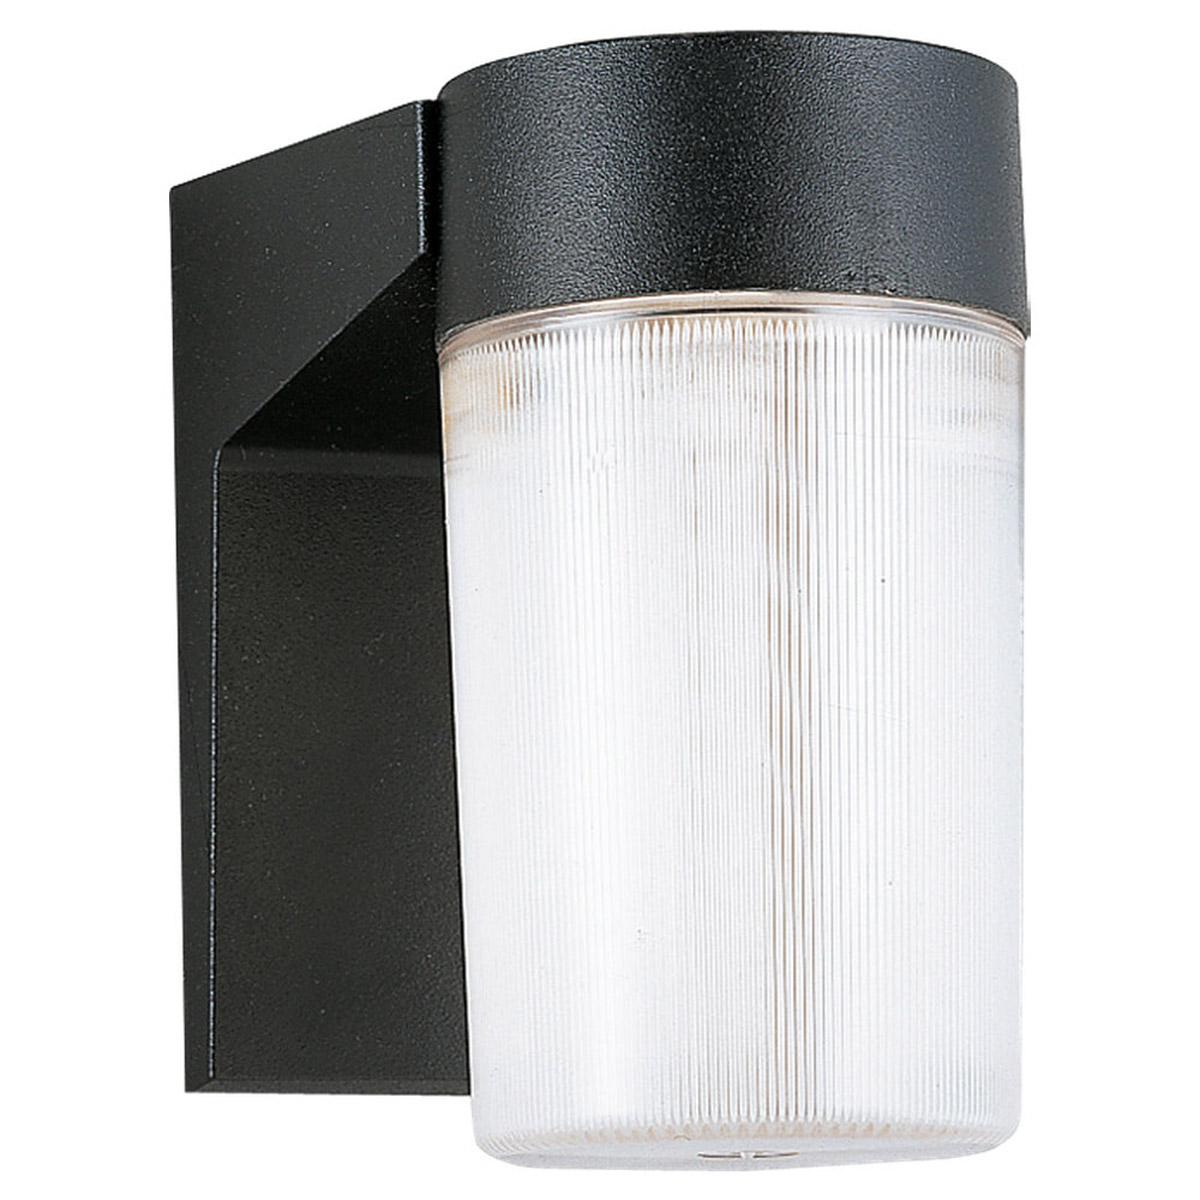 Sea Gull Lighting Signature 2 Light Outdoor Wall Lantern in Black 8907-12